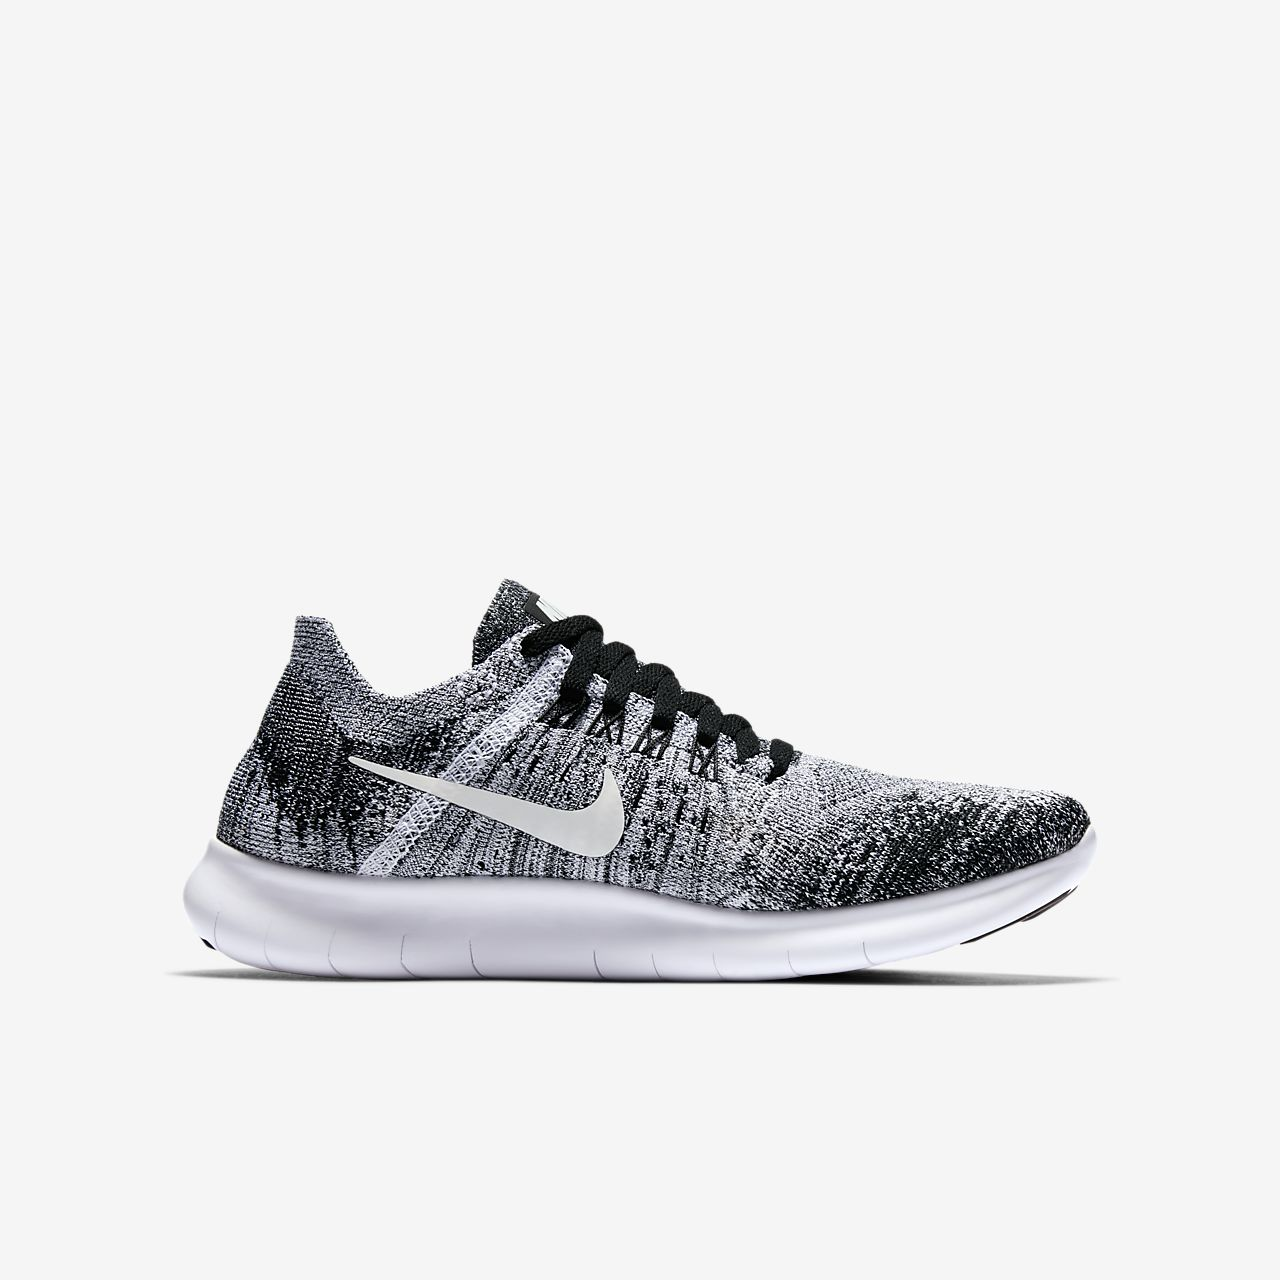 reputable site 1f0c2 e93f5 nike free rn 2017 youth